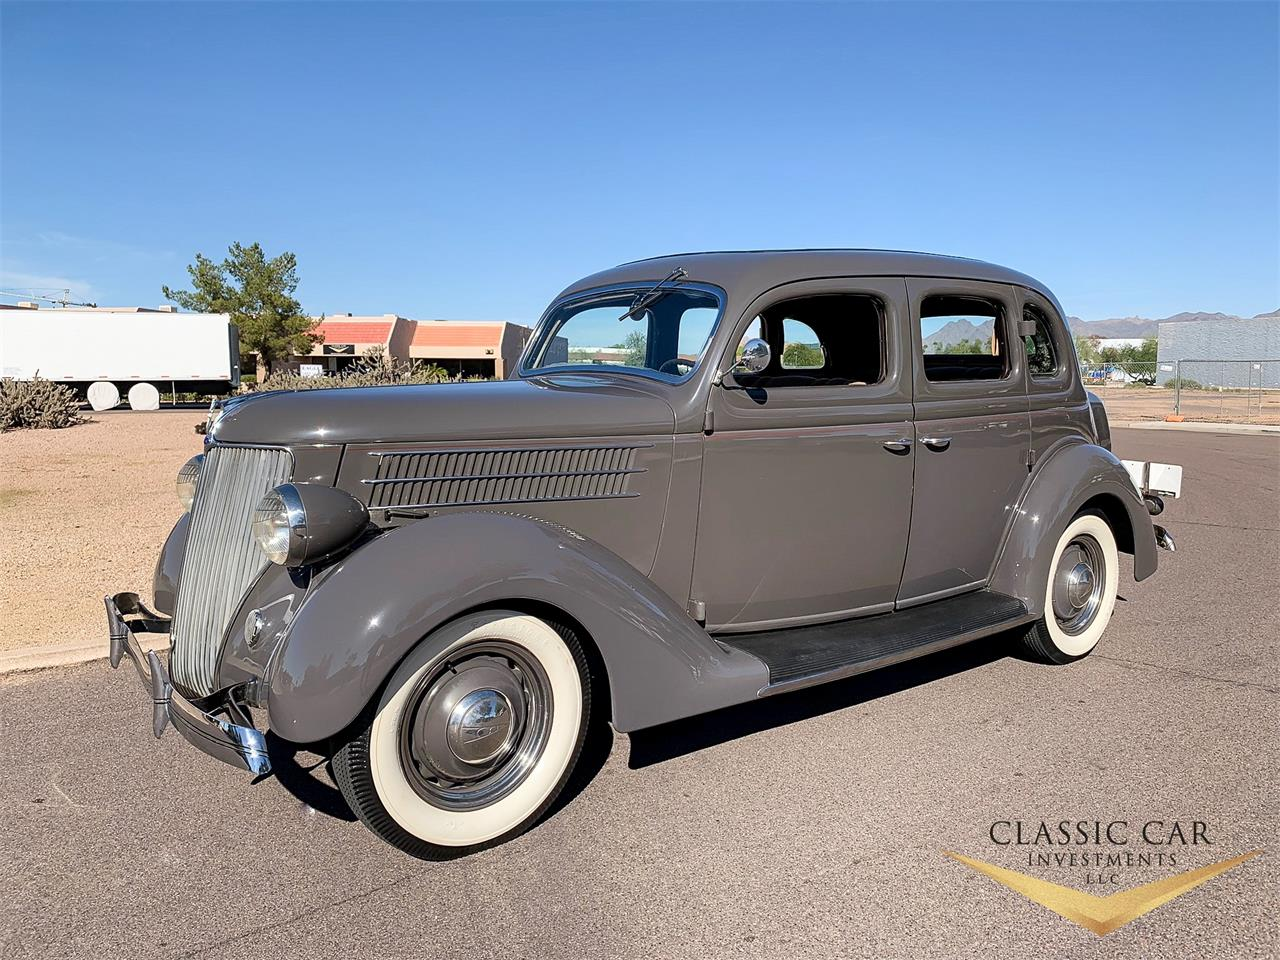 For Sale 1936 Ford Sedan In Scottsdale Arizona